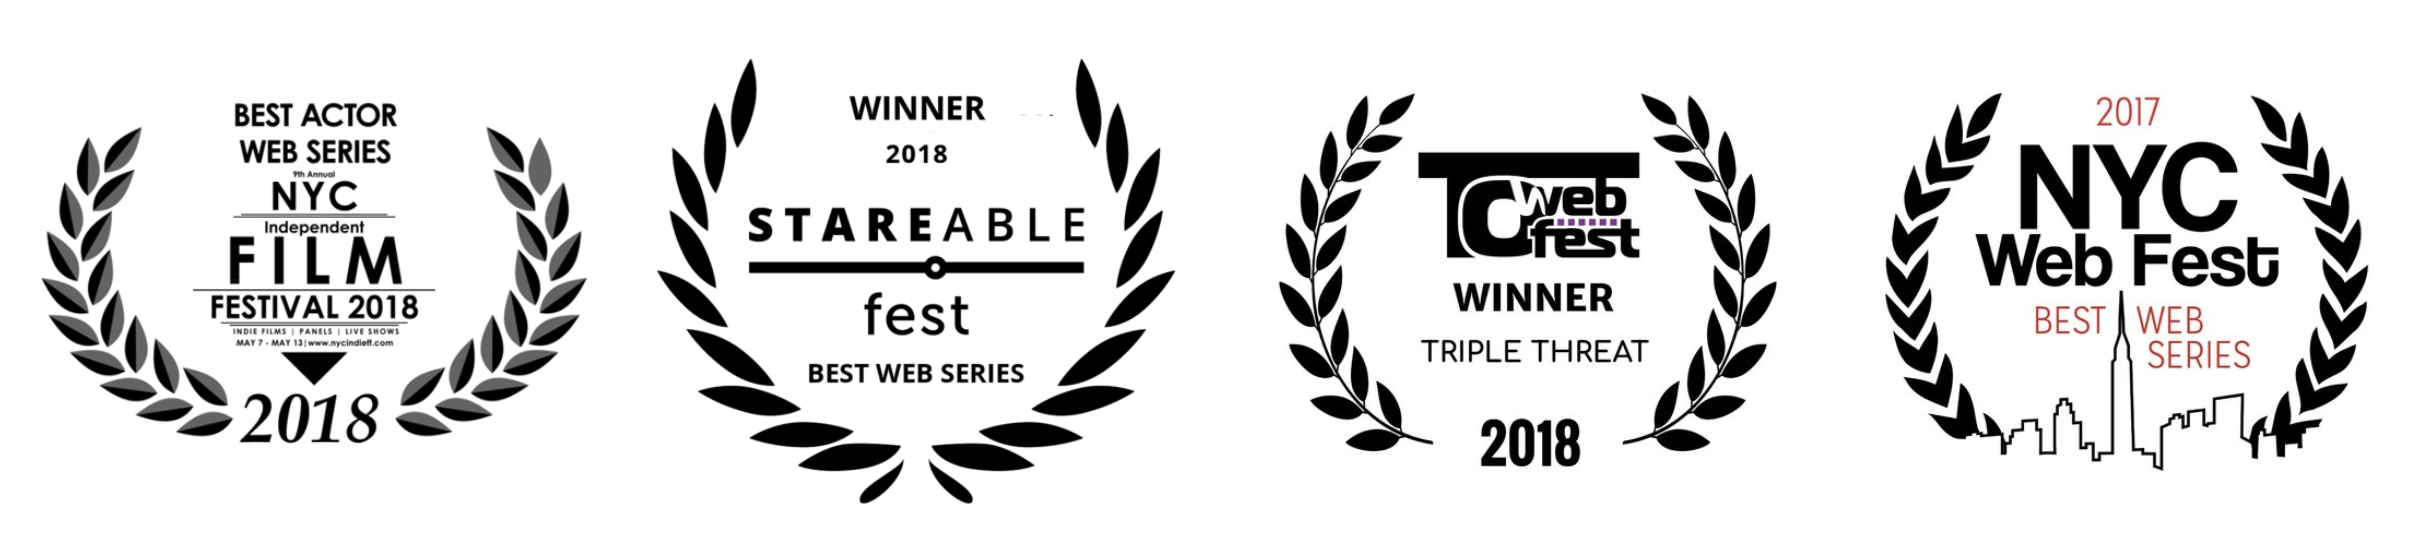 THE FEELS, a queer web series, has won best actor in a web series (tim manley) at nyc independent film festival, best of stareable fest at stareable fest, triple threat auteur at toronto web fest (tim manley: writer, director, actor), and best web series at nyc web fest.